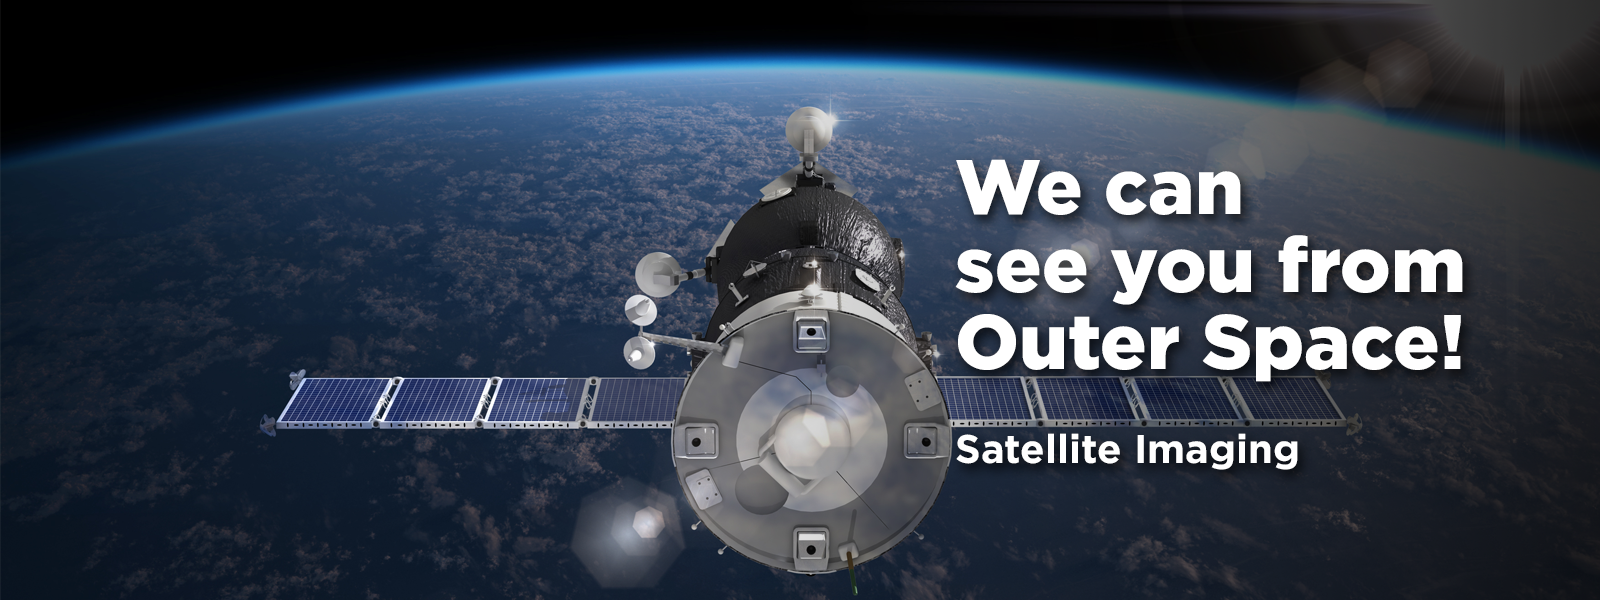 satellite hovers over earth